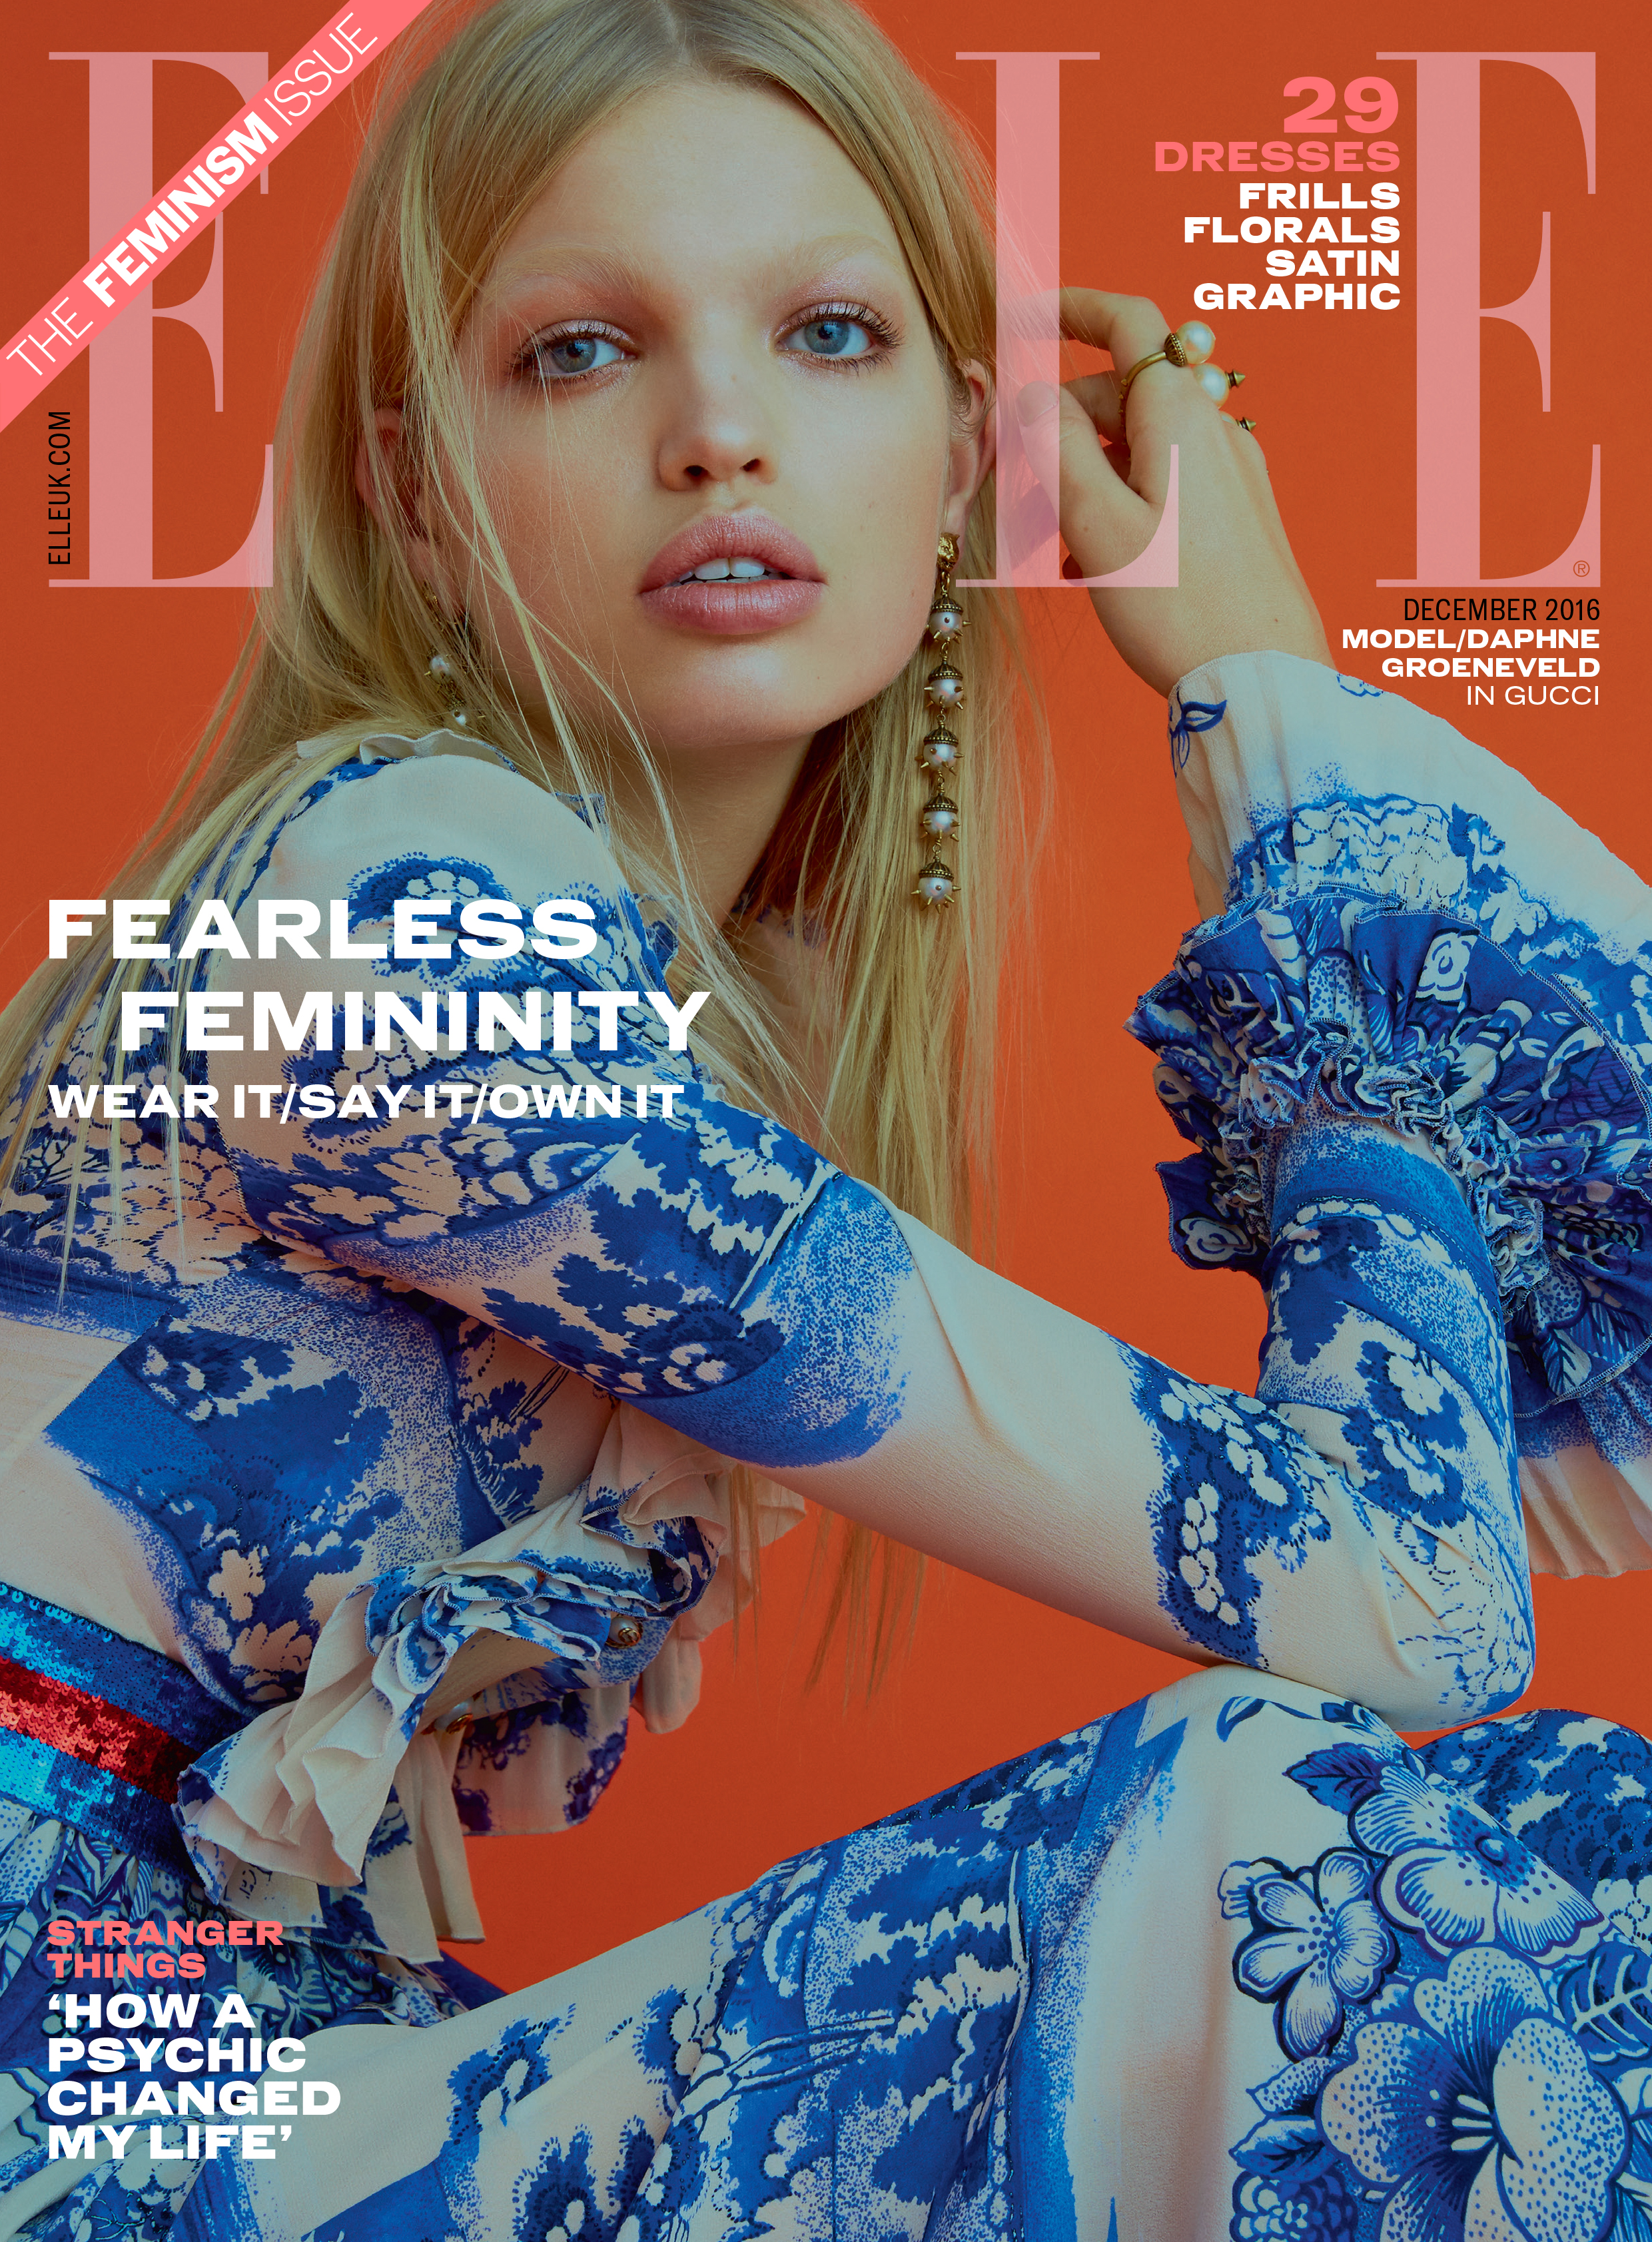 ELLEUK_DECEMBER_COVER_DAPHNE_MAIN_2016.jpg